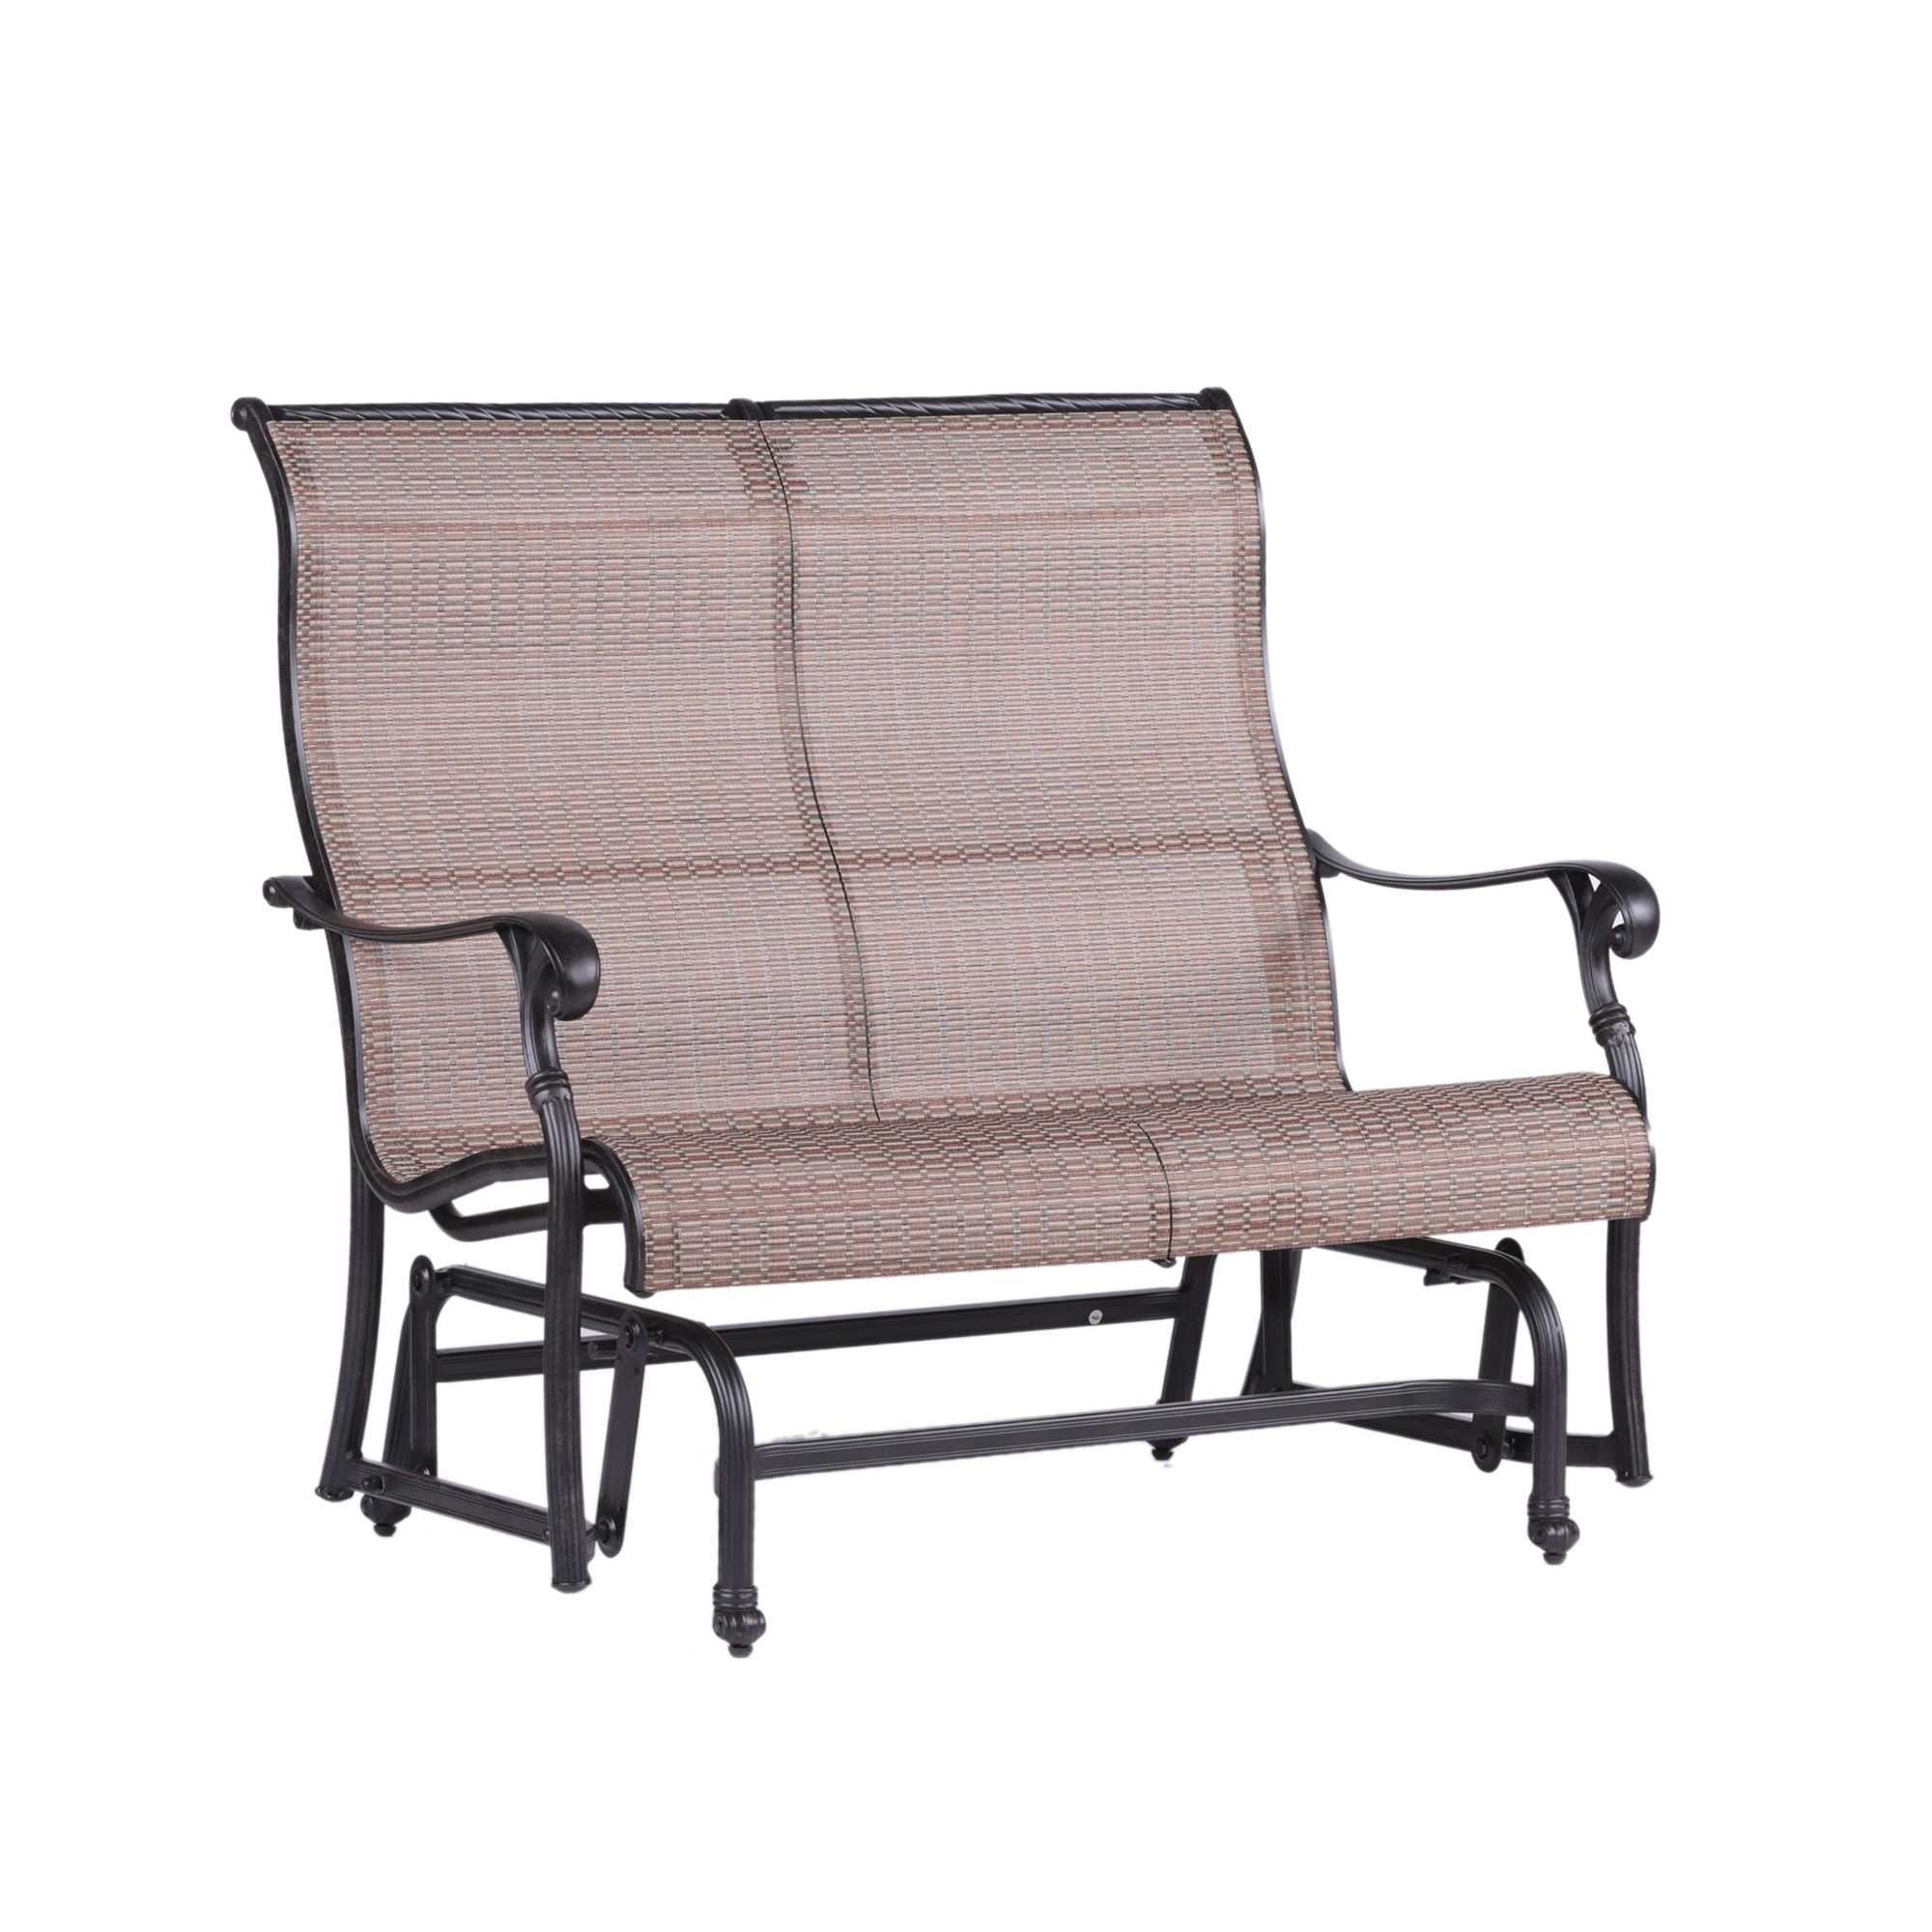 Yorkshire Cast Aluminum (Silver) Sling Fabric Double Glider Intended For Outdoor Fabric Glider Benches (View 8 of 25)